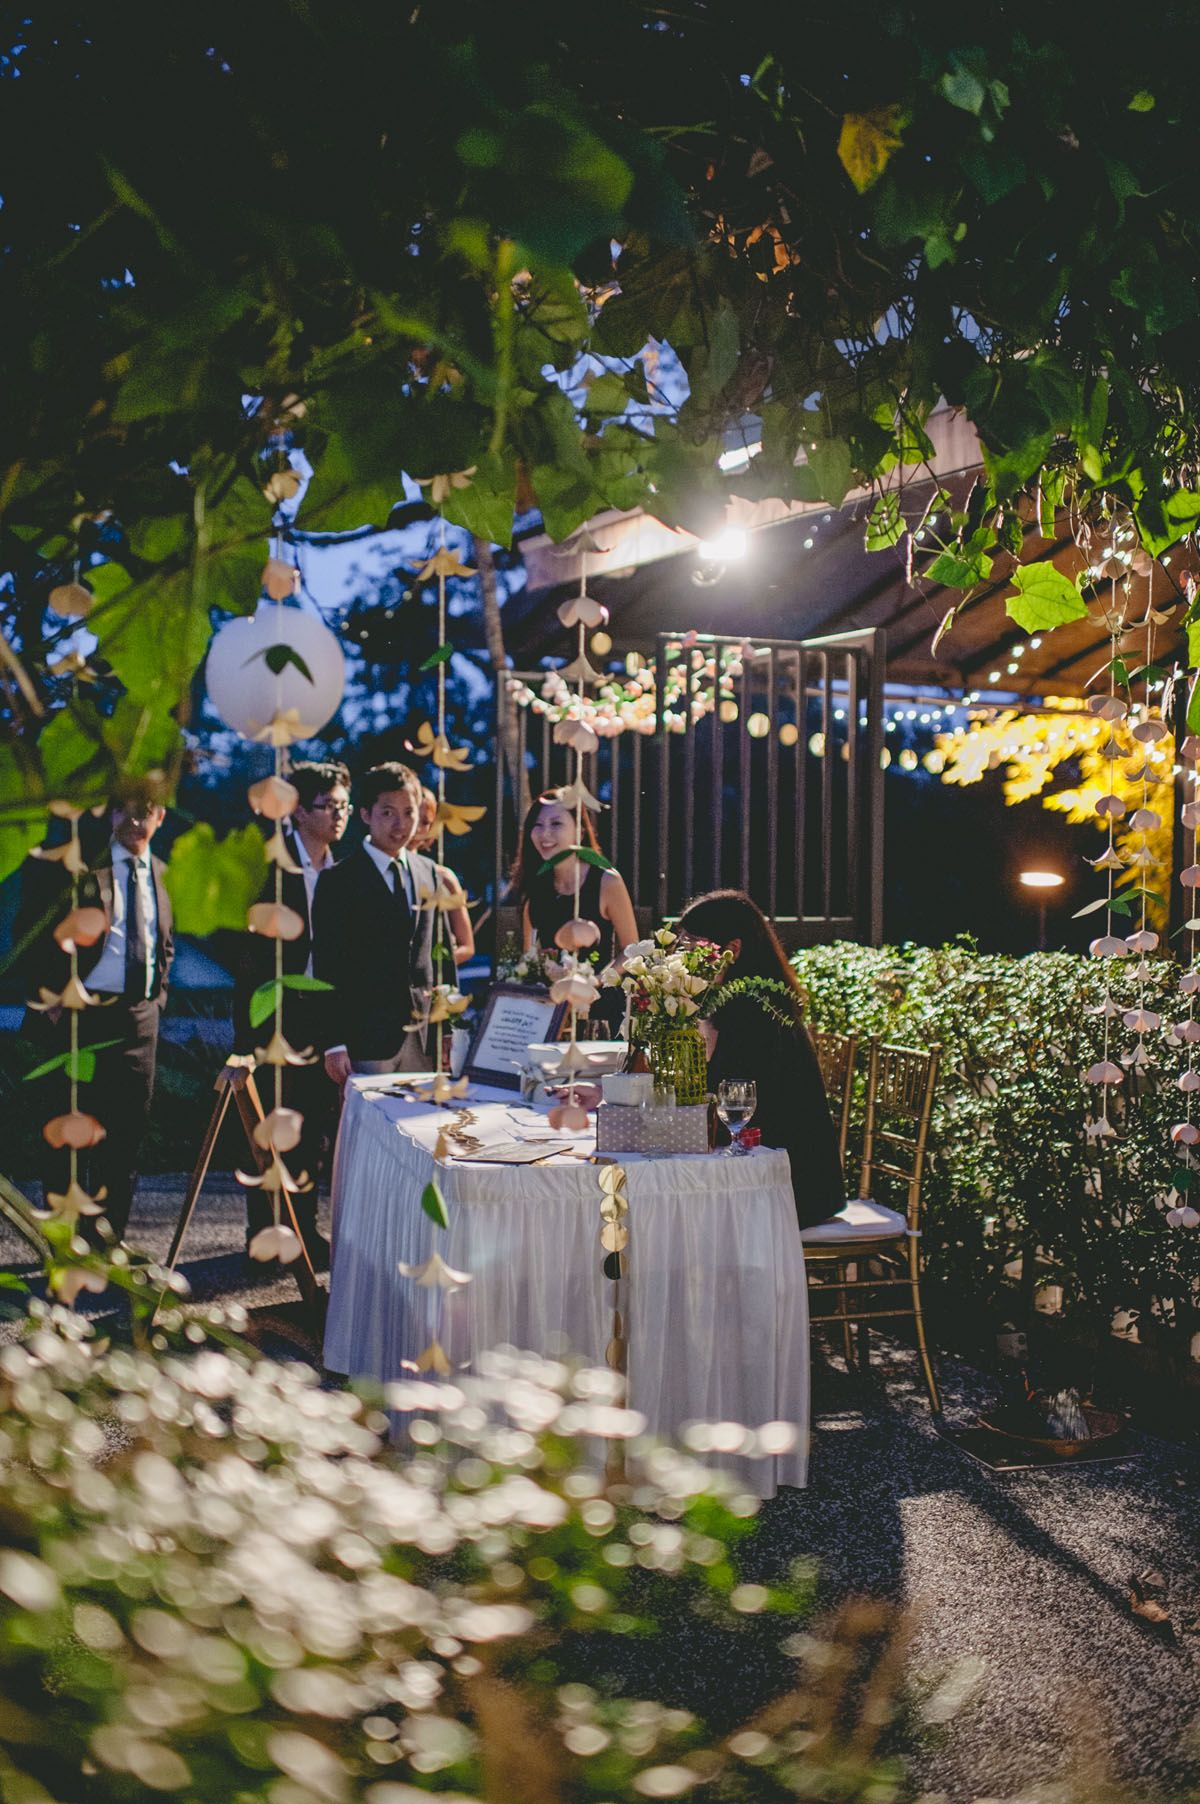 Rustic and whimsical wedding at the stables whimsical wedding rustic and whimsical wedding at the stables whimsical wedding whimsical and weddings junglespirit Image collections